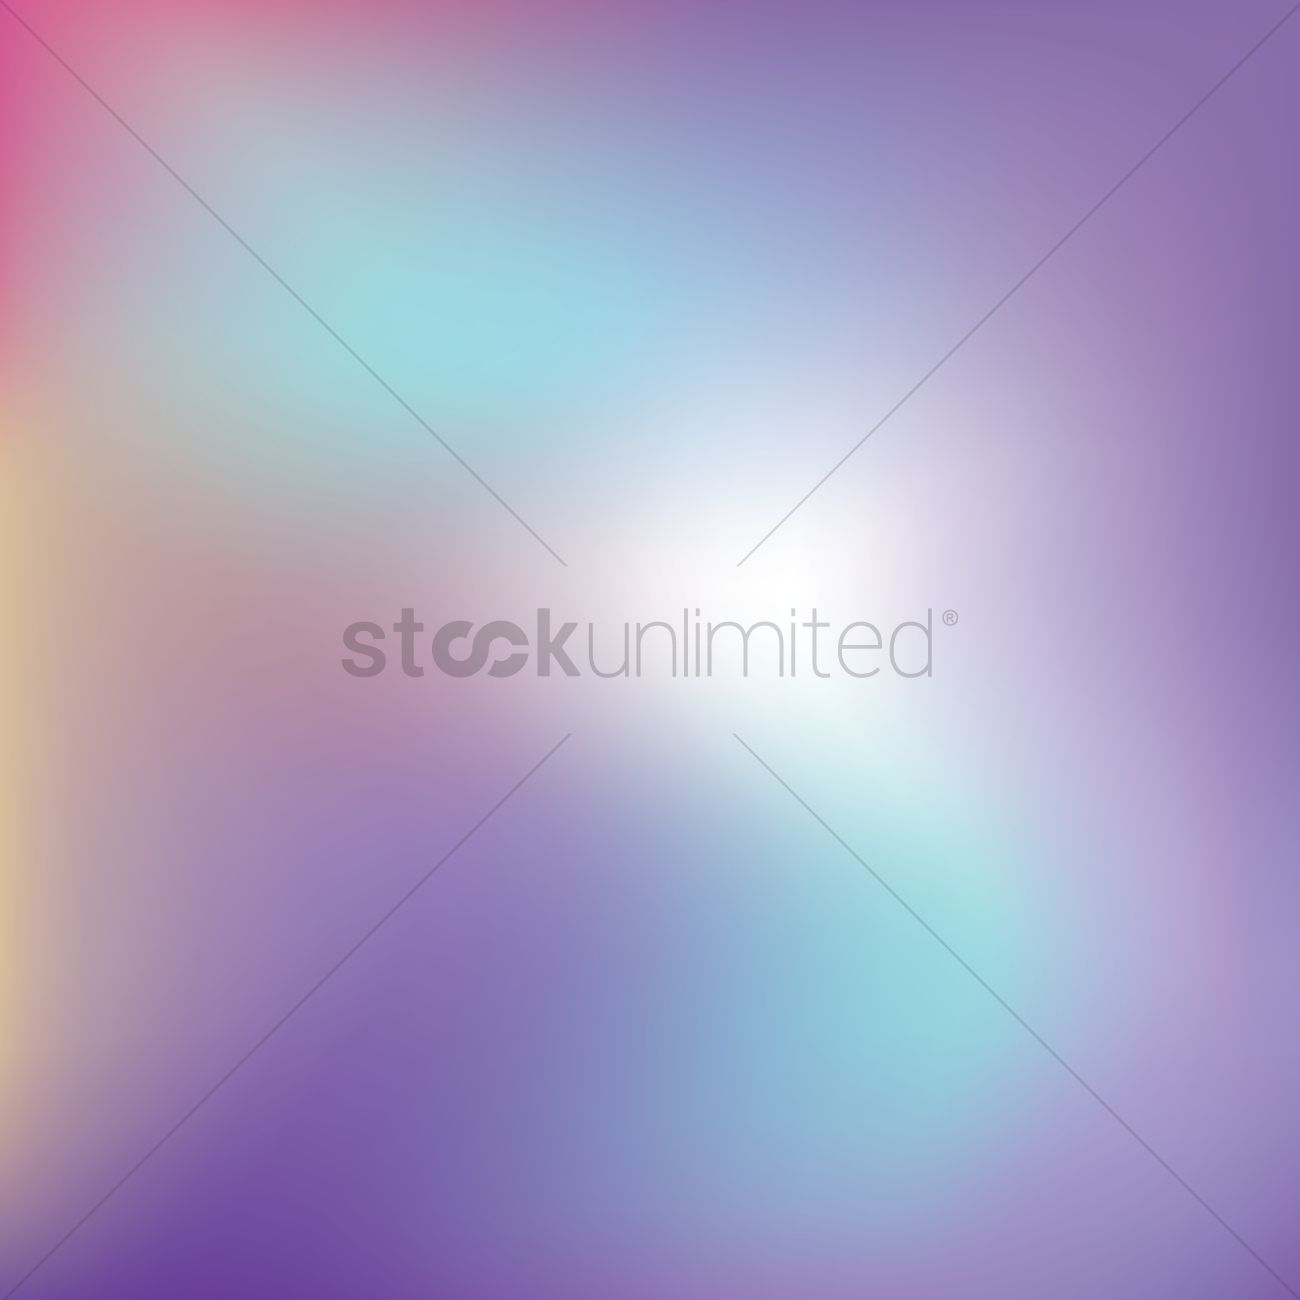 simple background design vector image